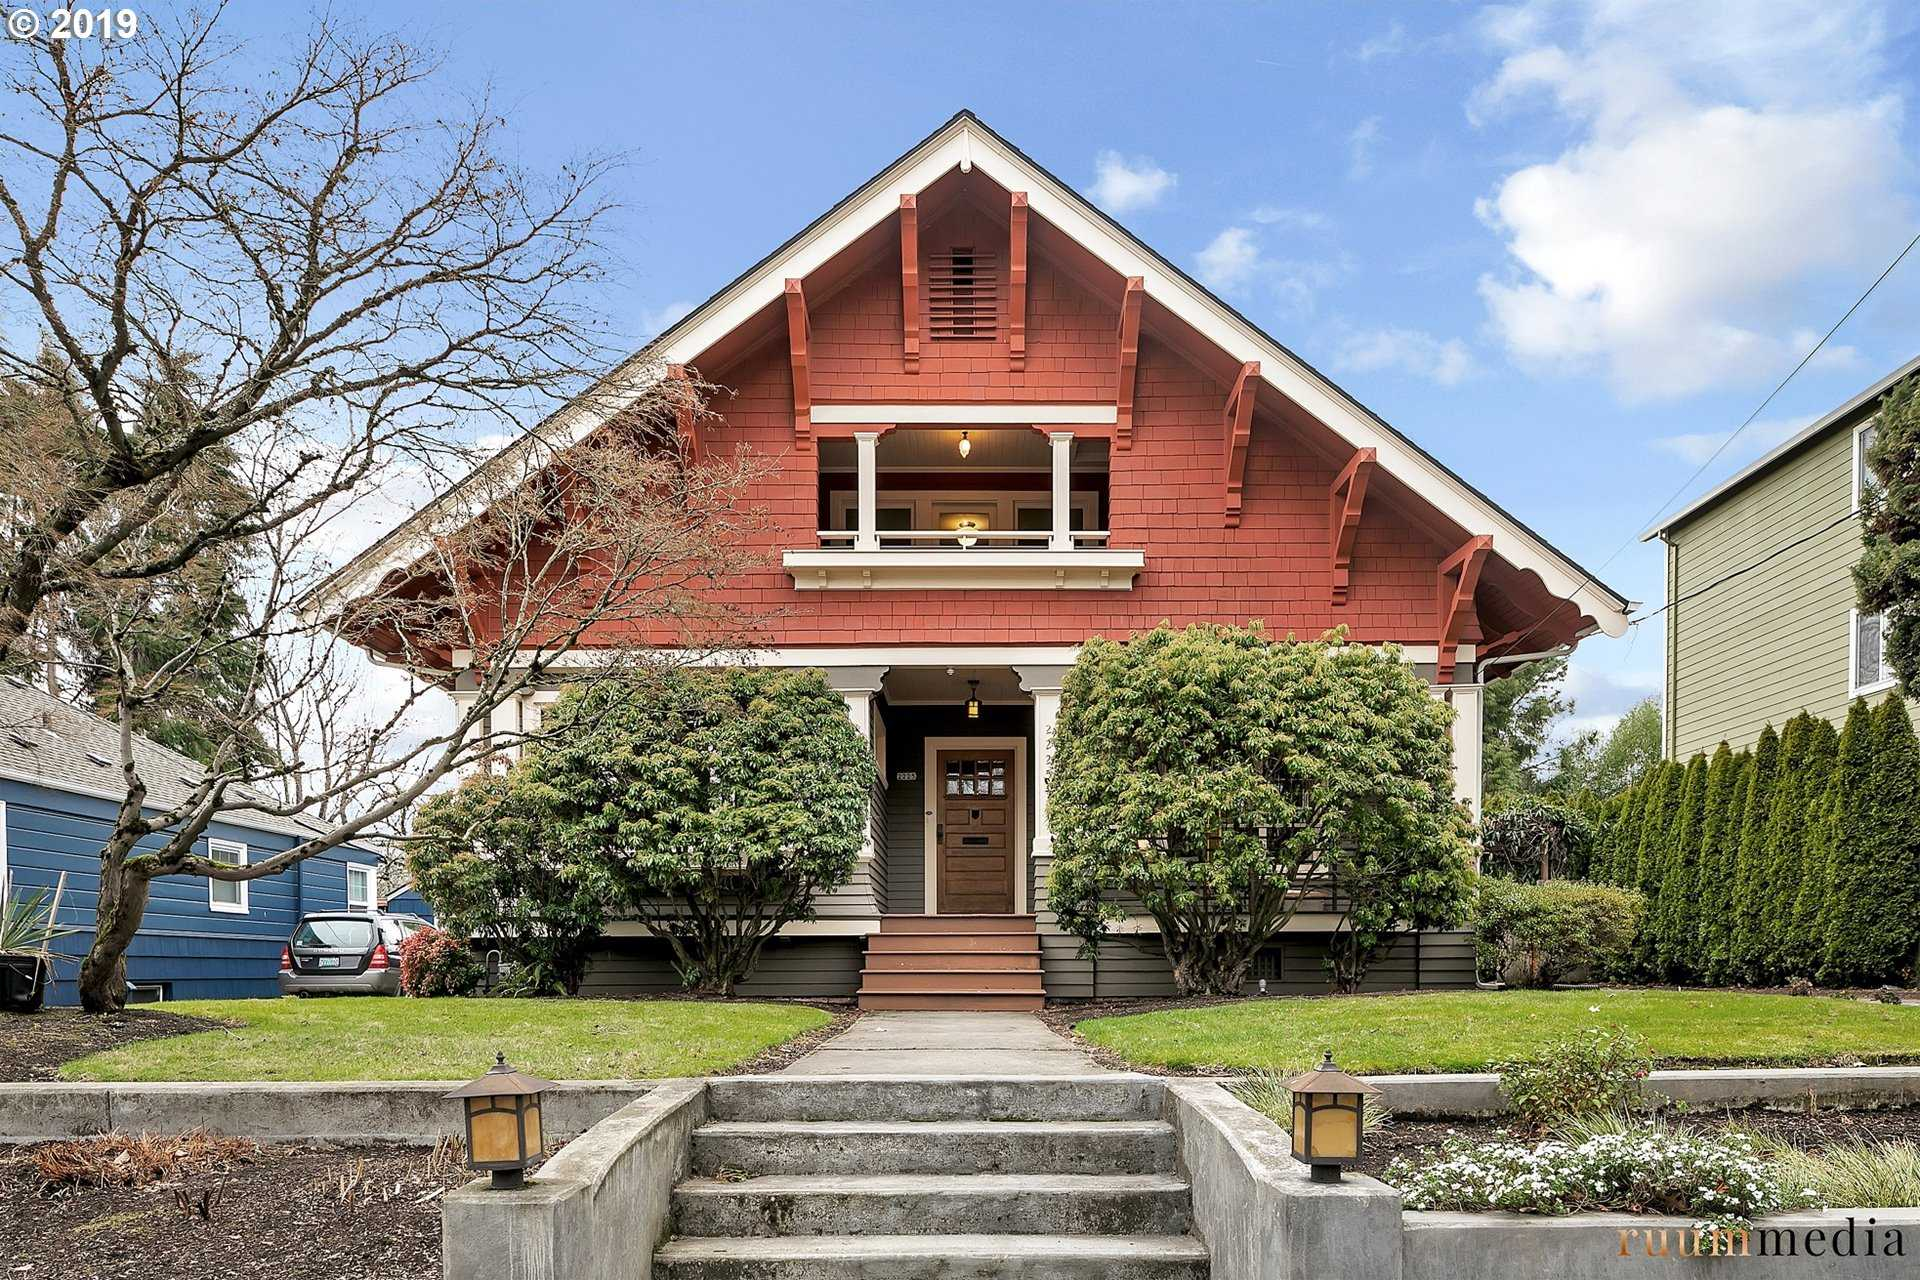 $732,000 - 4Br/2Ba -  for Sale in Mt. Tabor, Portland